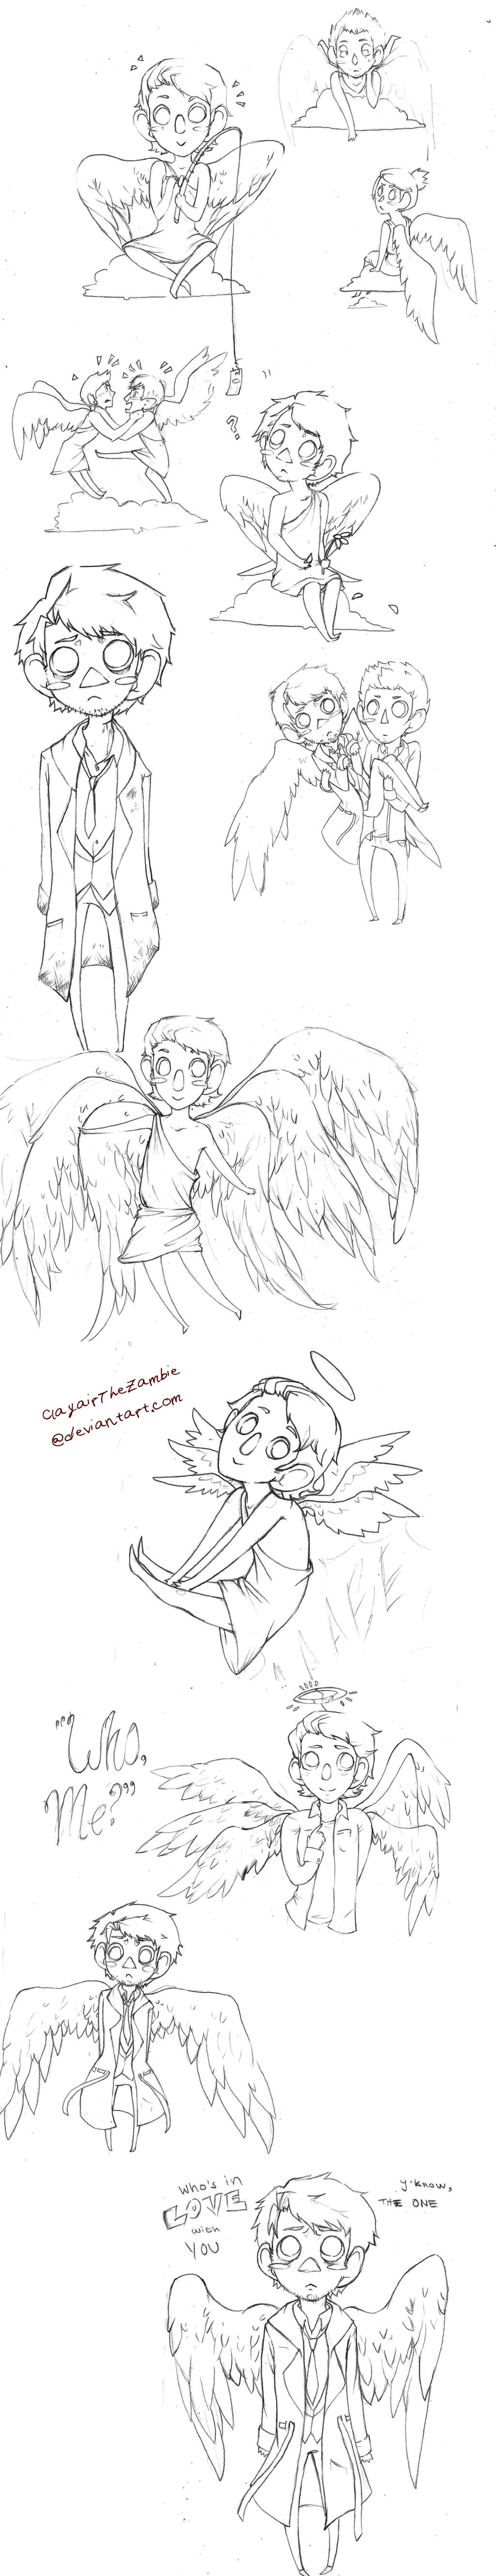 The Angels, They're Derping by ClayairTheZambie